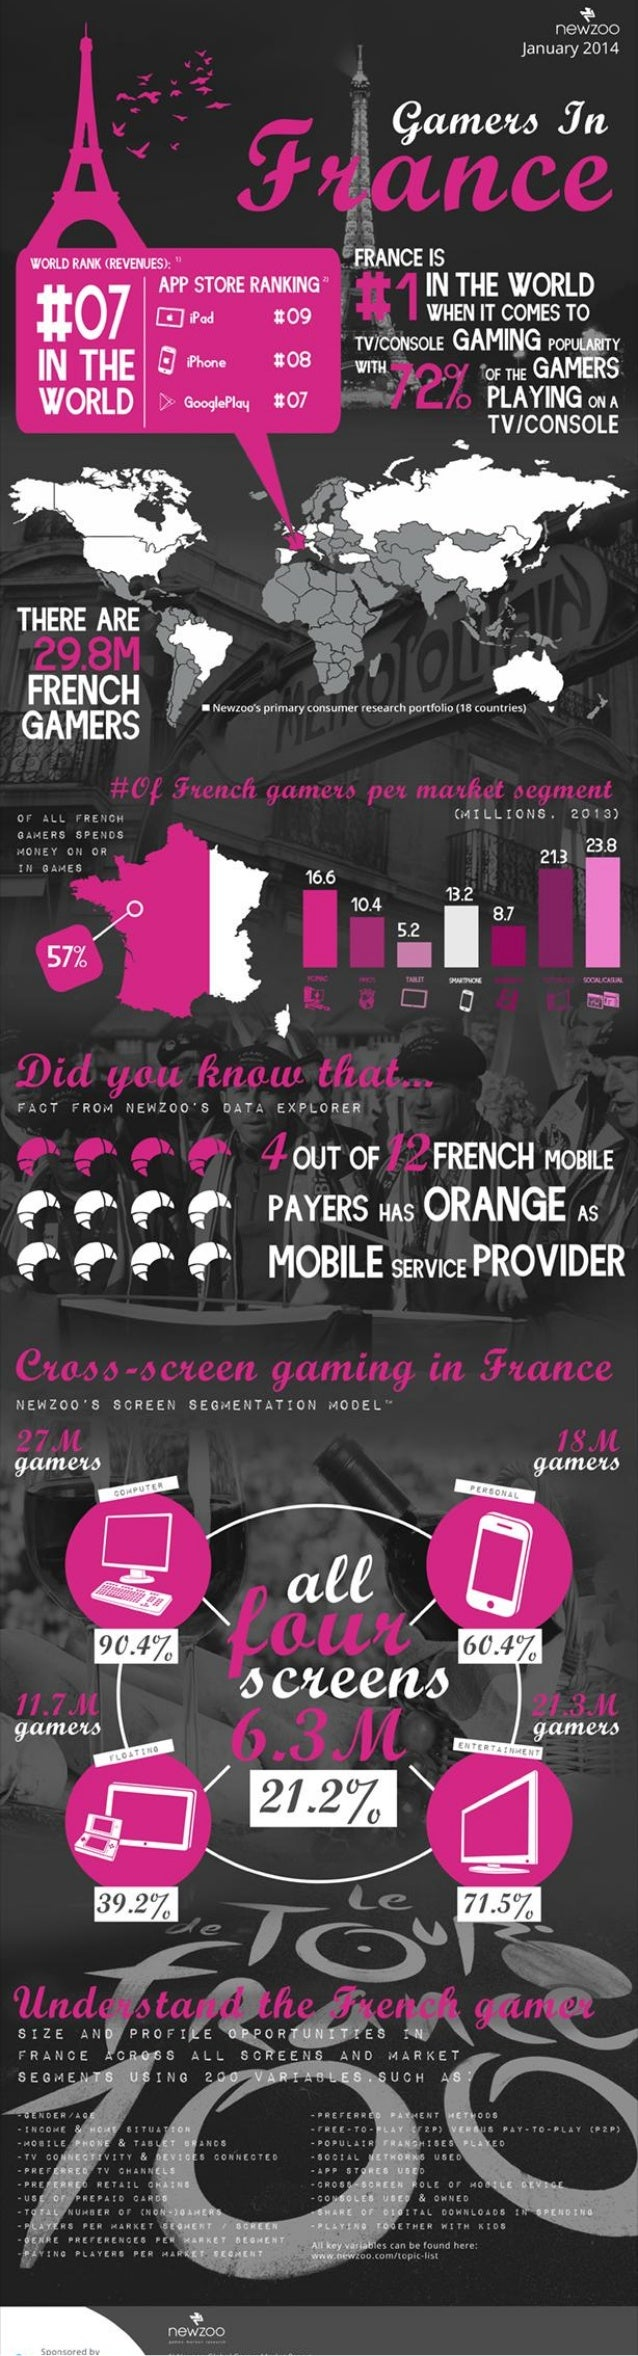 Gamers in france